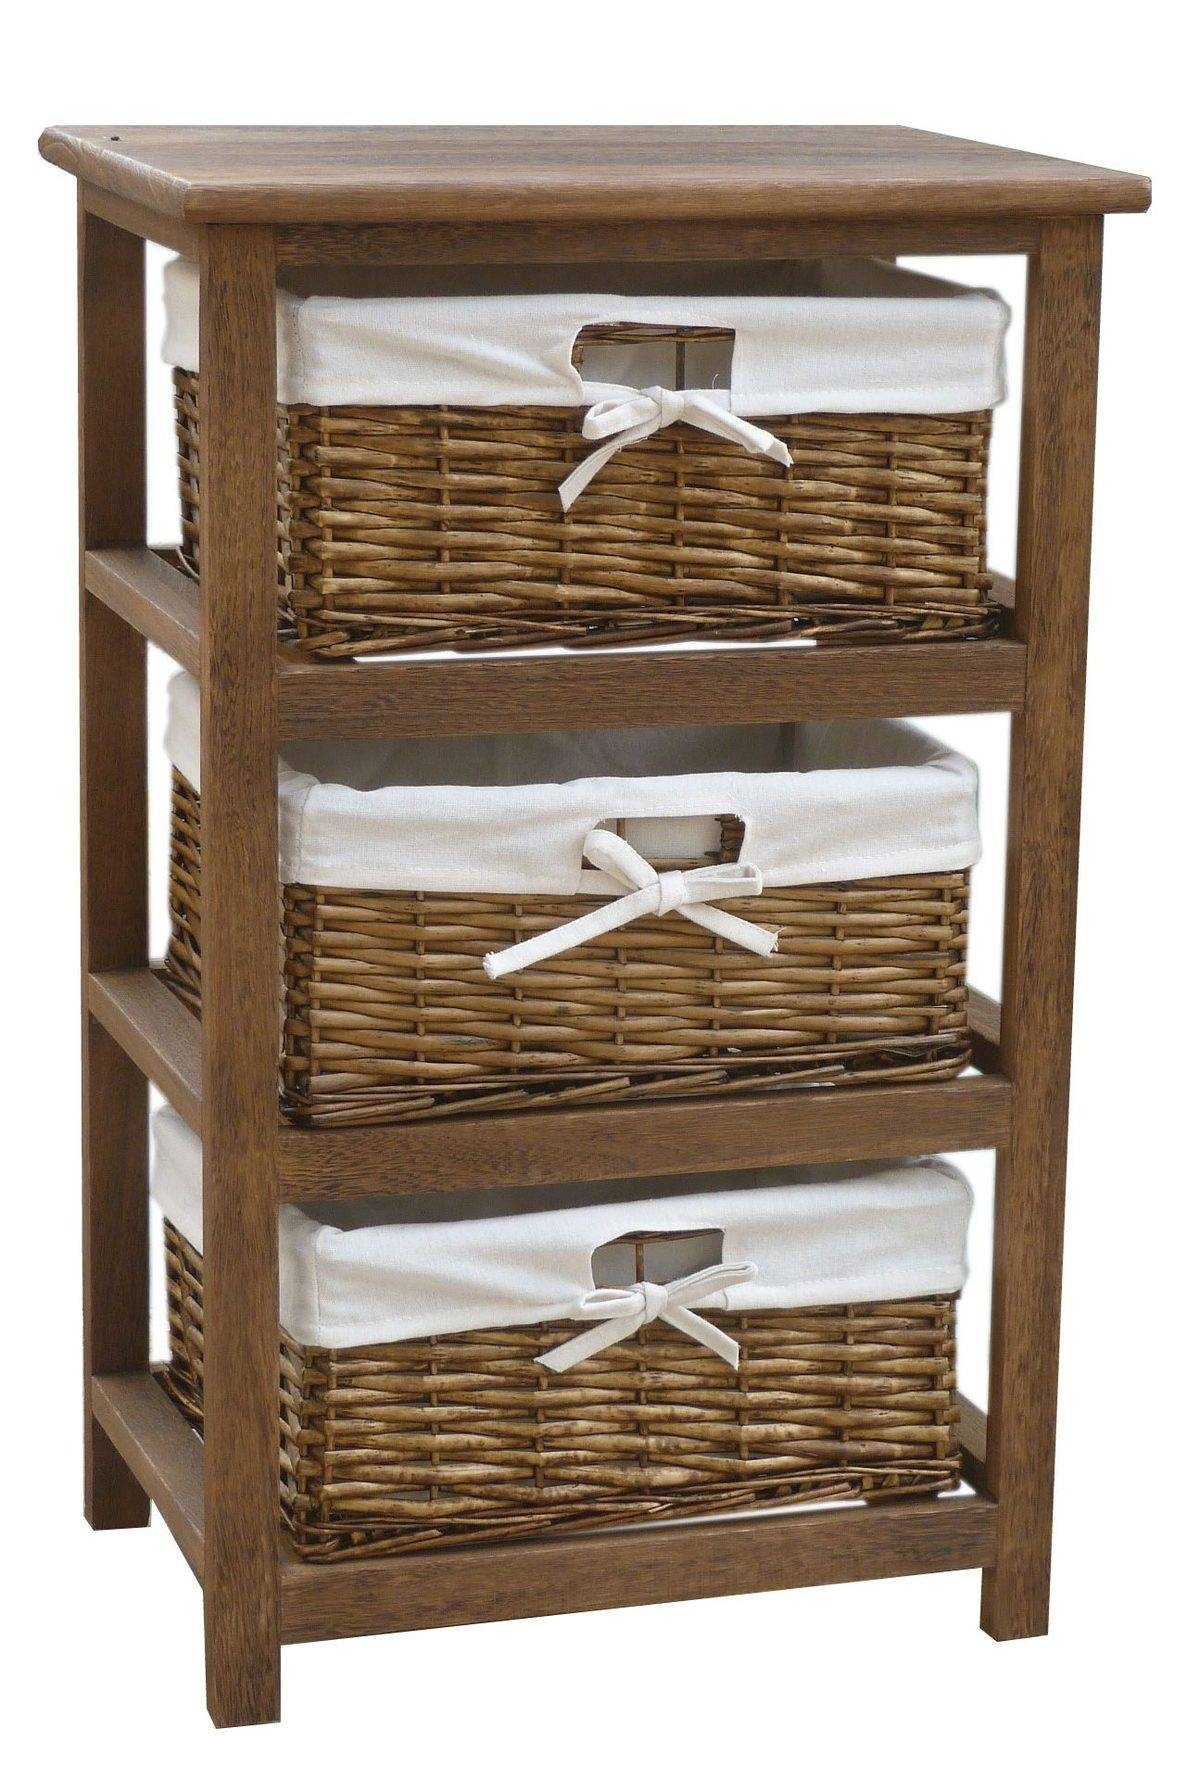 Wood Storage Cabinets With Baskets